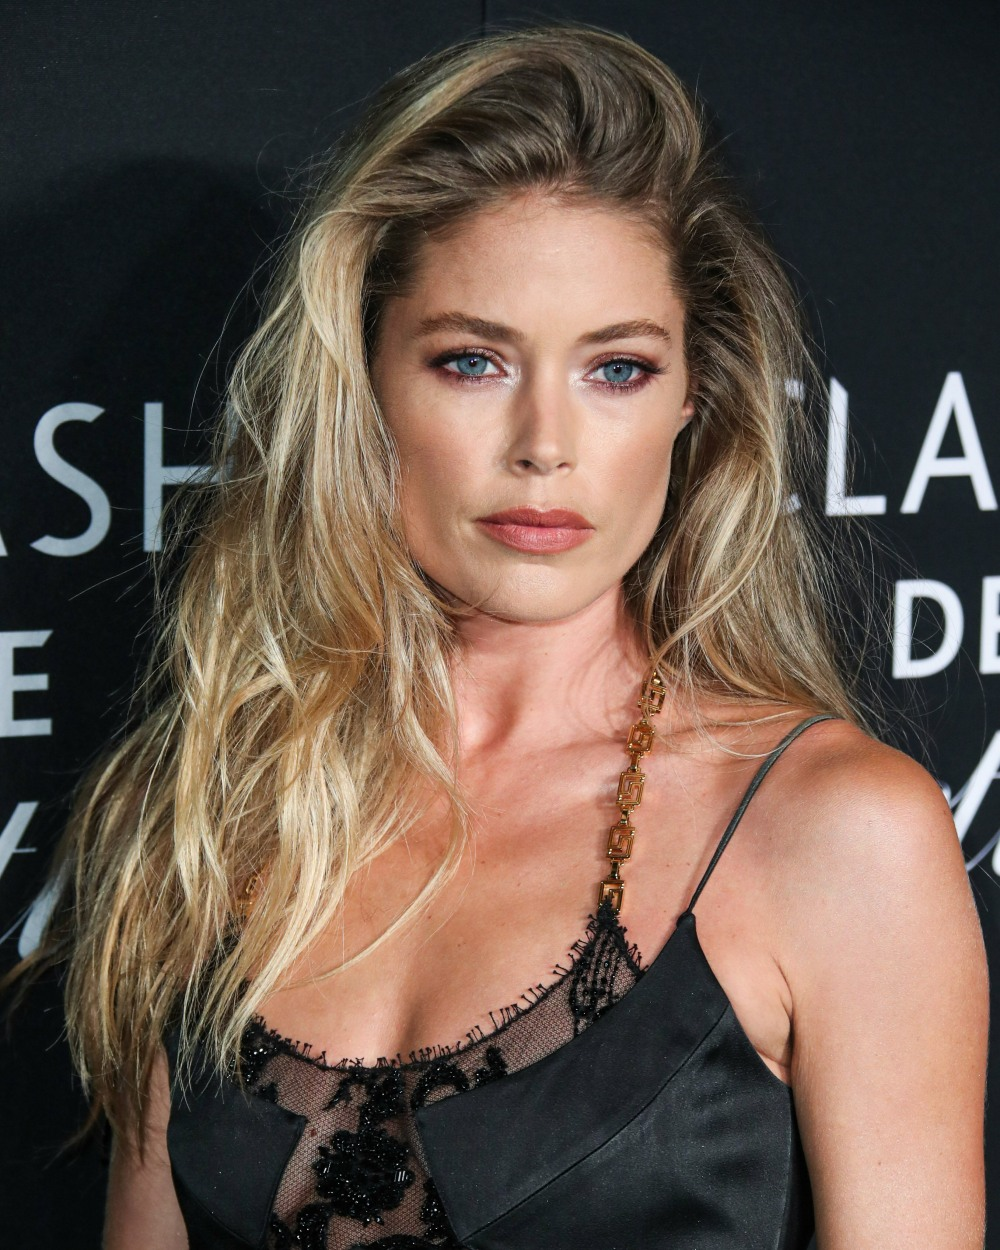 Doutzen Kroes arrives at the 2019 Harper's BAZAAR Celebration of 'ICONS By Carine Roitfeld' held at The Plaza Hotel on September 6, 2019 in Manhattan, New York City, New York, United States.